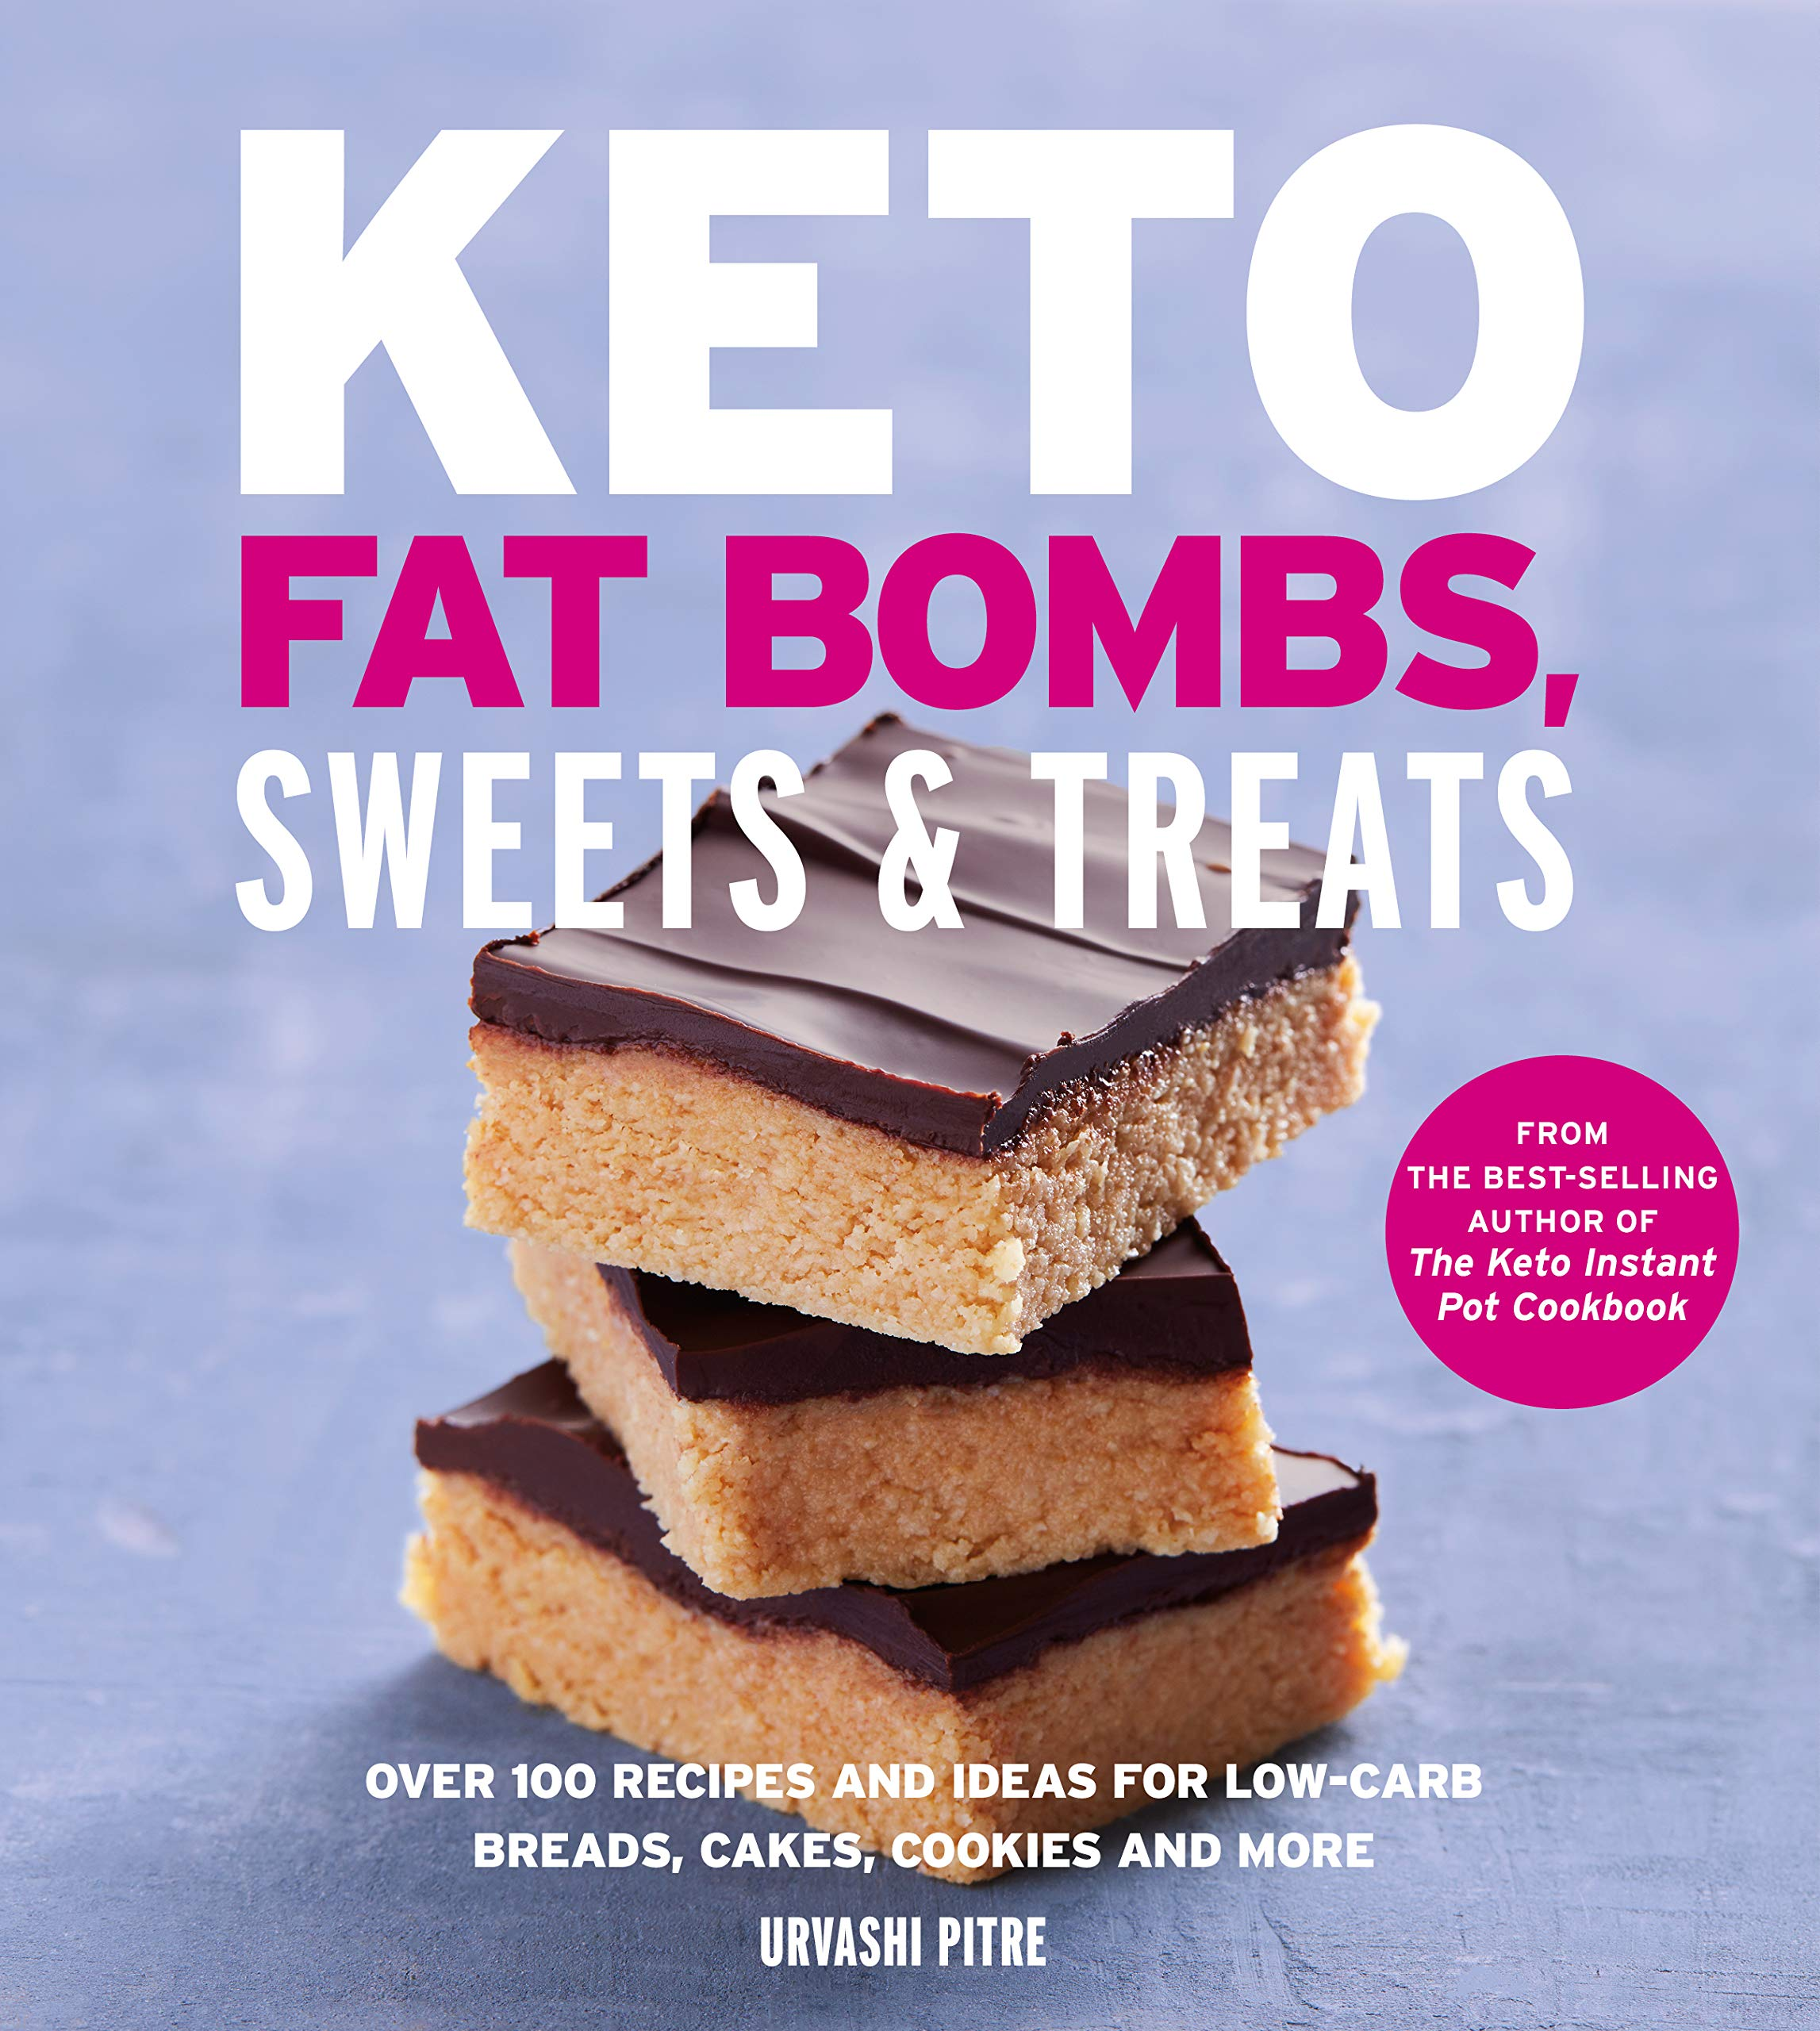 Measurements Of Keto Sweets  Keto-Friendly Dessert Recipes